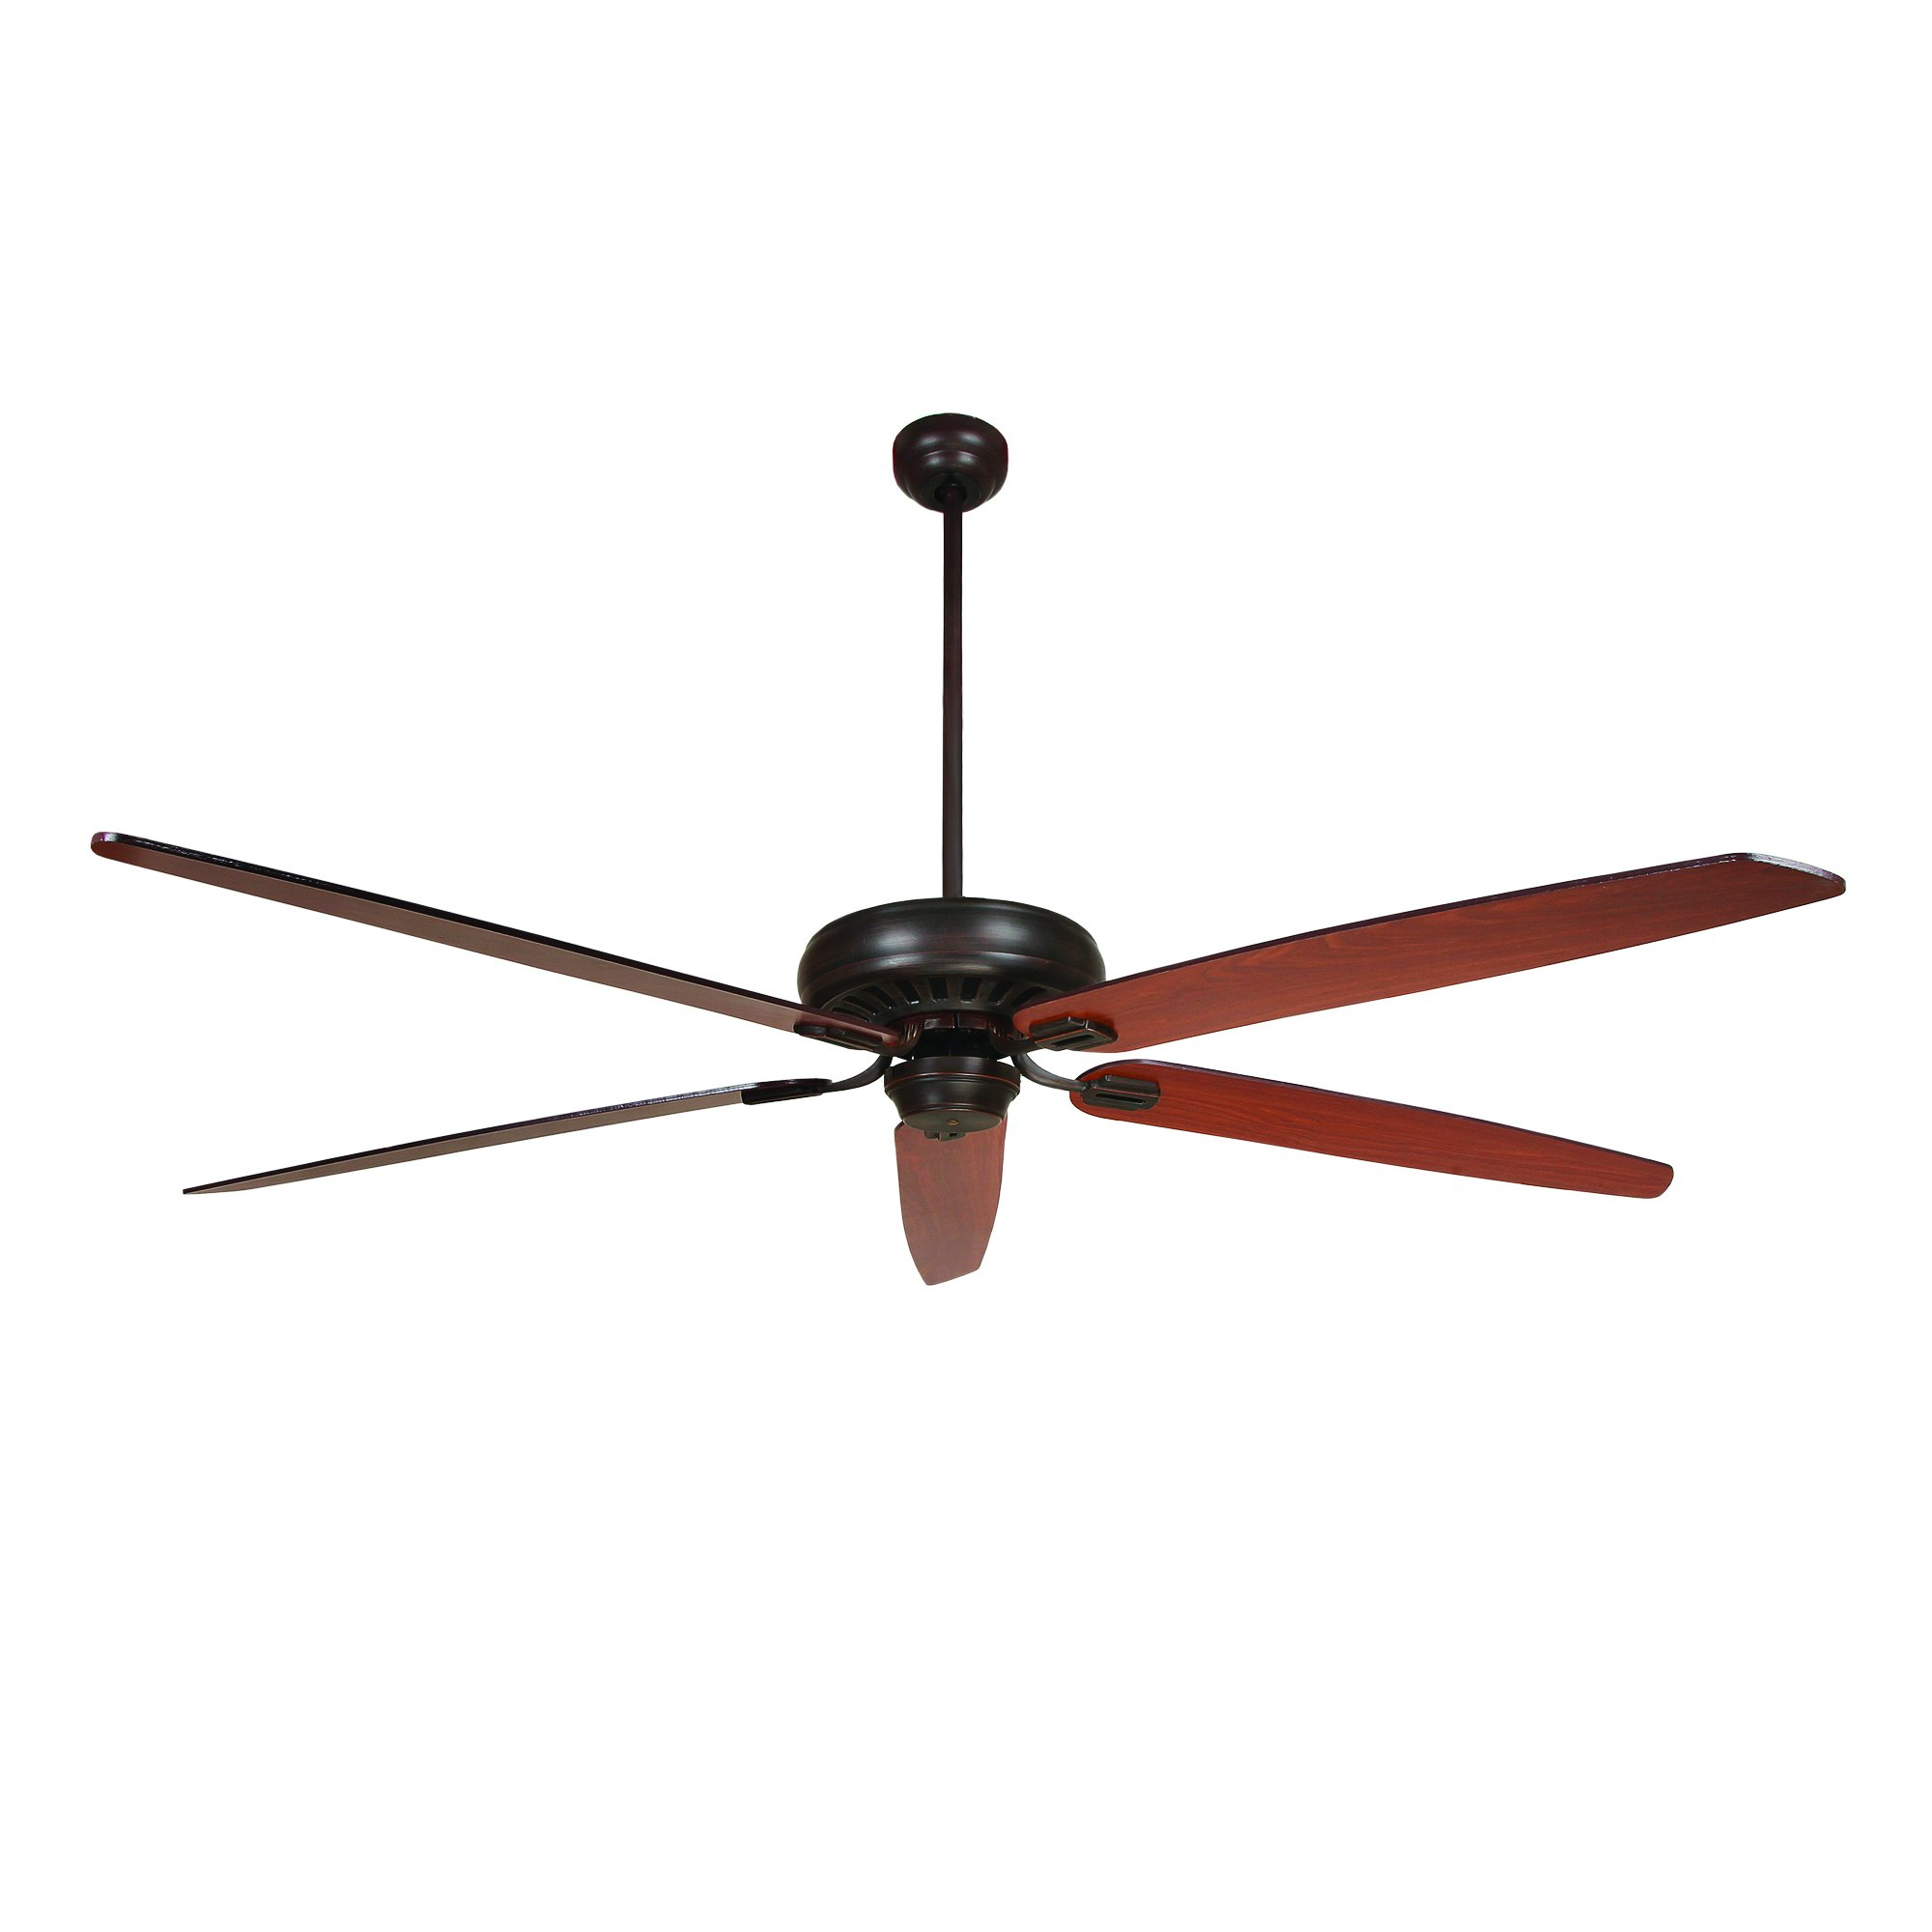 Yosemite Home Decor PARKHILL-ORB-NLK 70-Inch Ceiling Fan in Oil Rubbed Bronze Finish with remote control included and no Light kit, Oil Rubbed Bronze